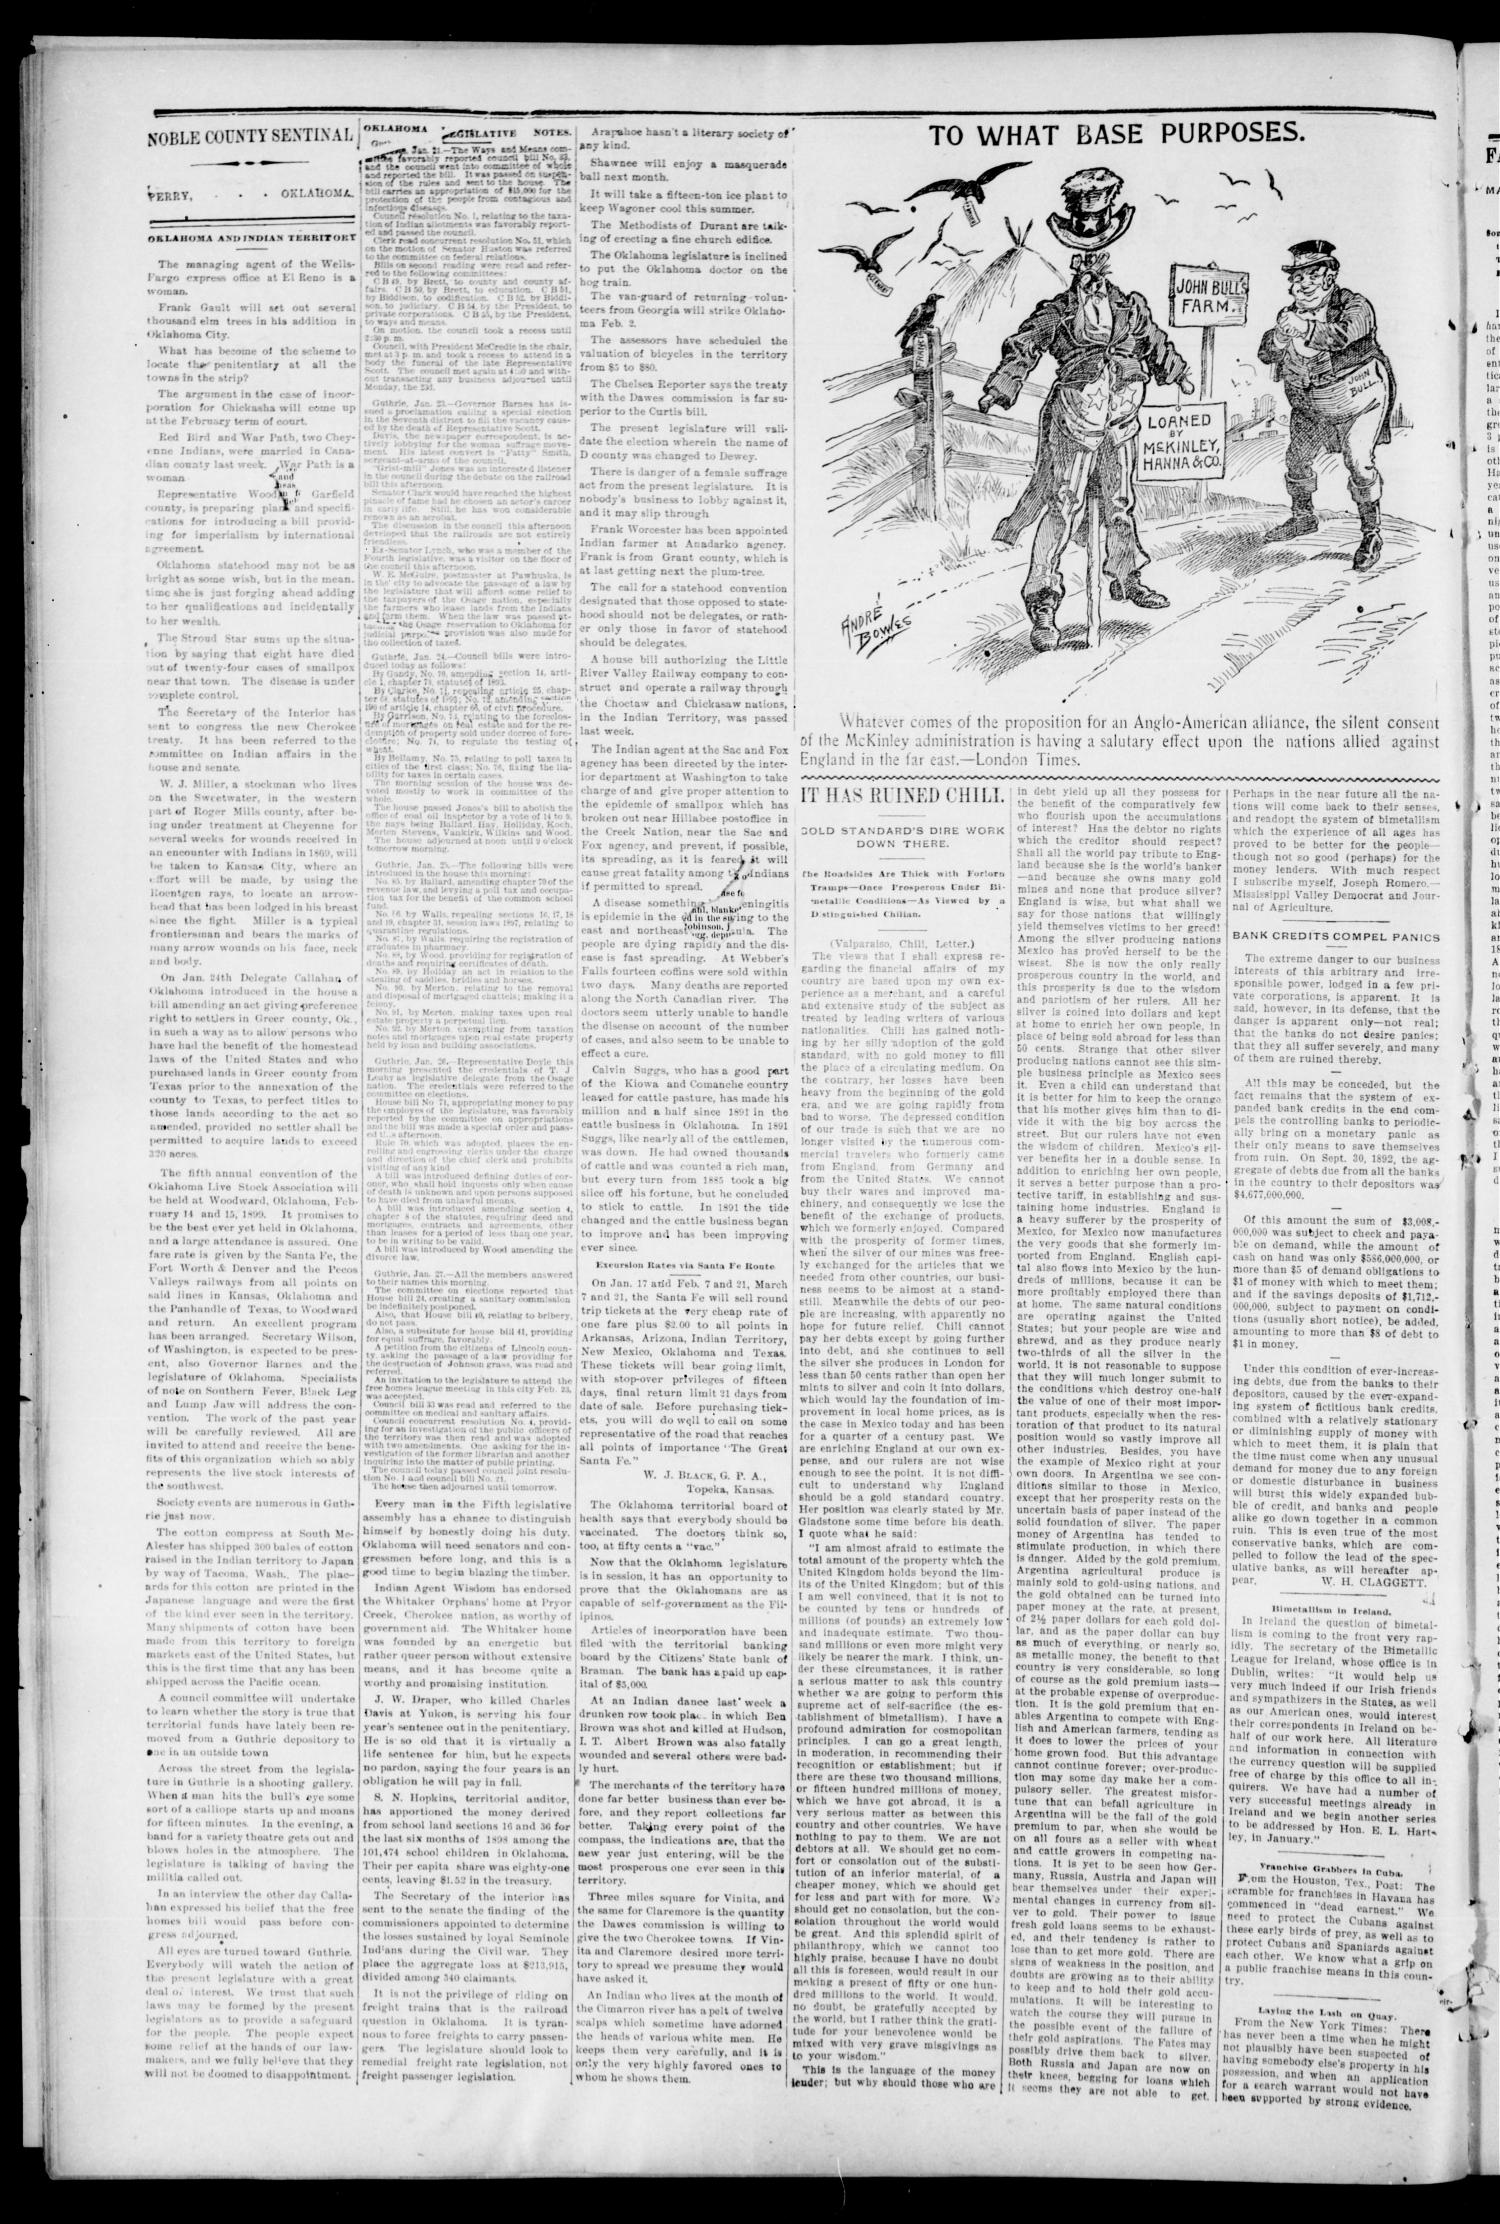 Noble County Sentinel. (Perry, Okla.), Vol. 6, No. 21, Ed. 1 Thursday, February 2, 1899                                                                                                      [Sequence #]: 2 of 8